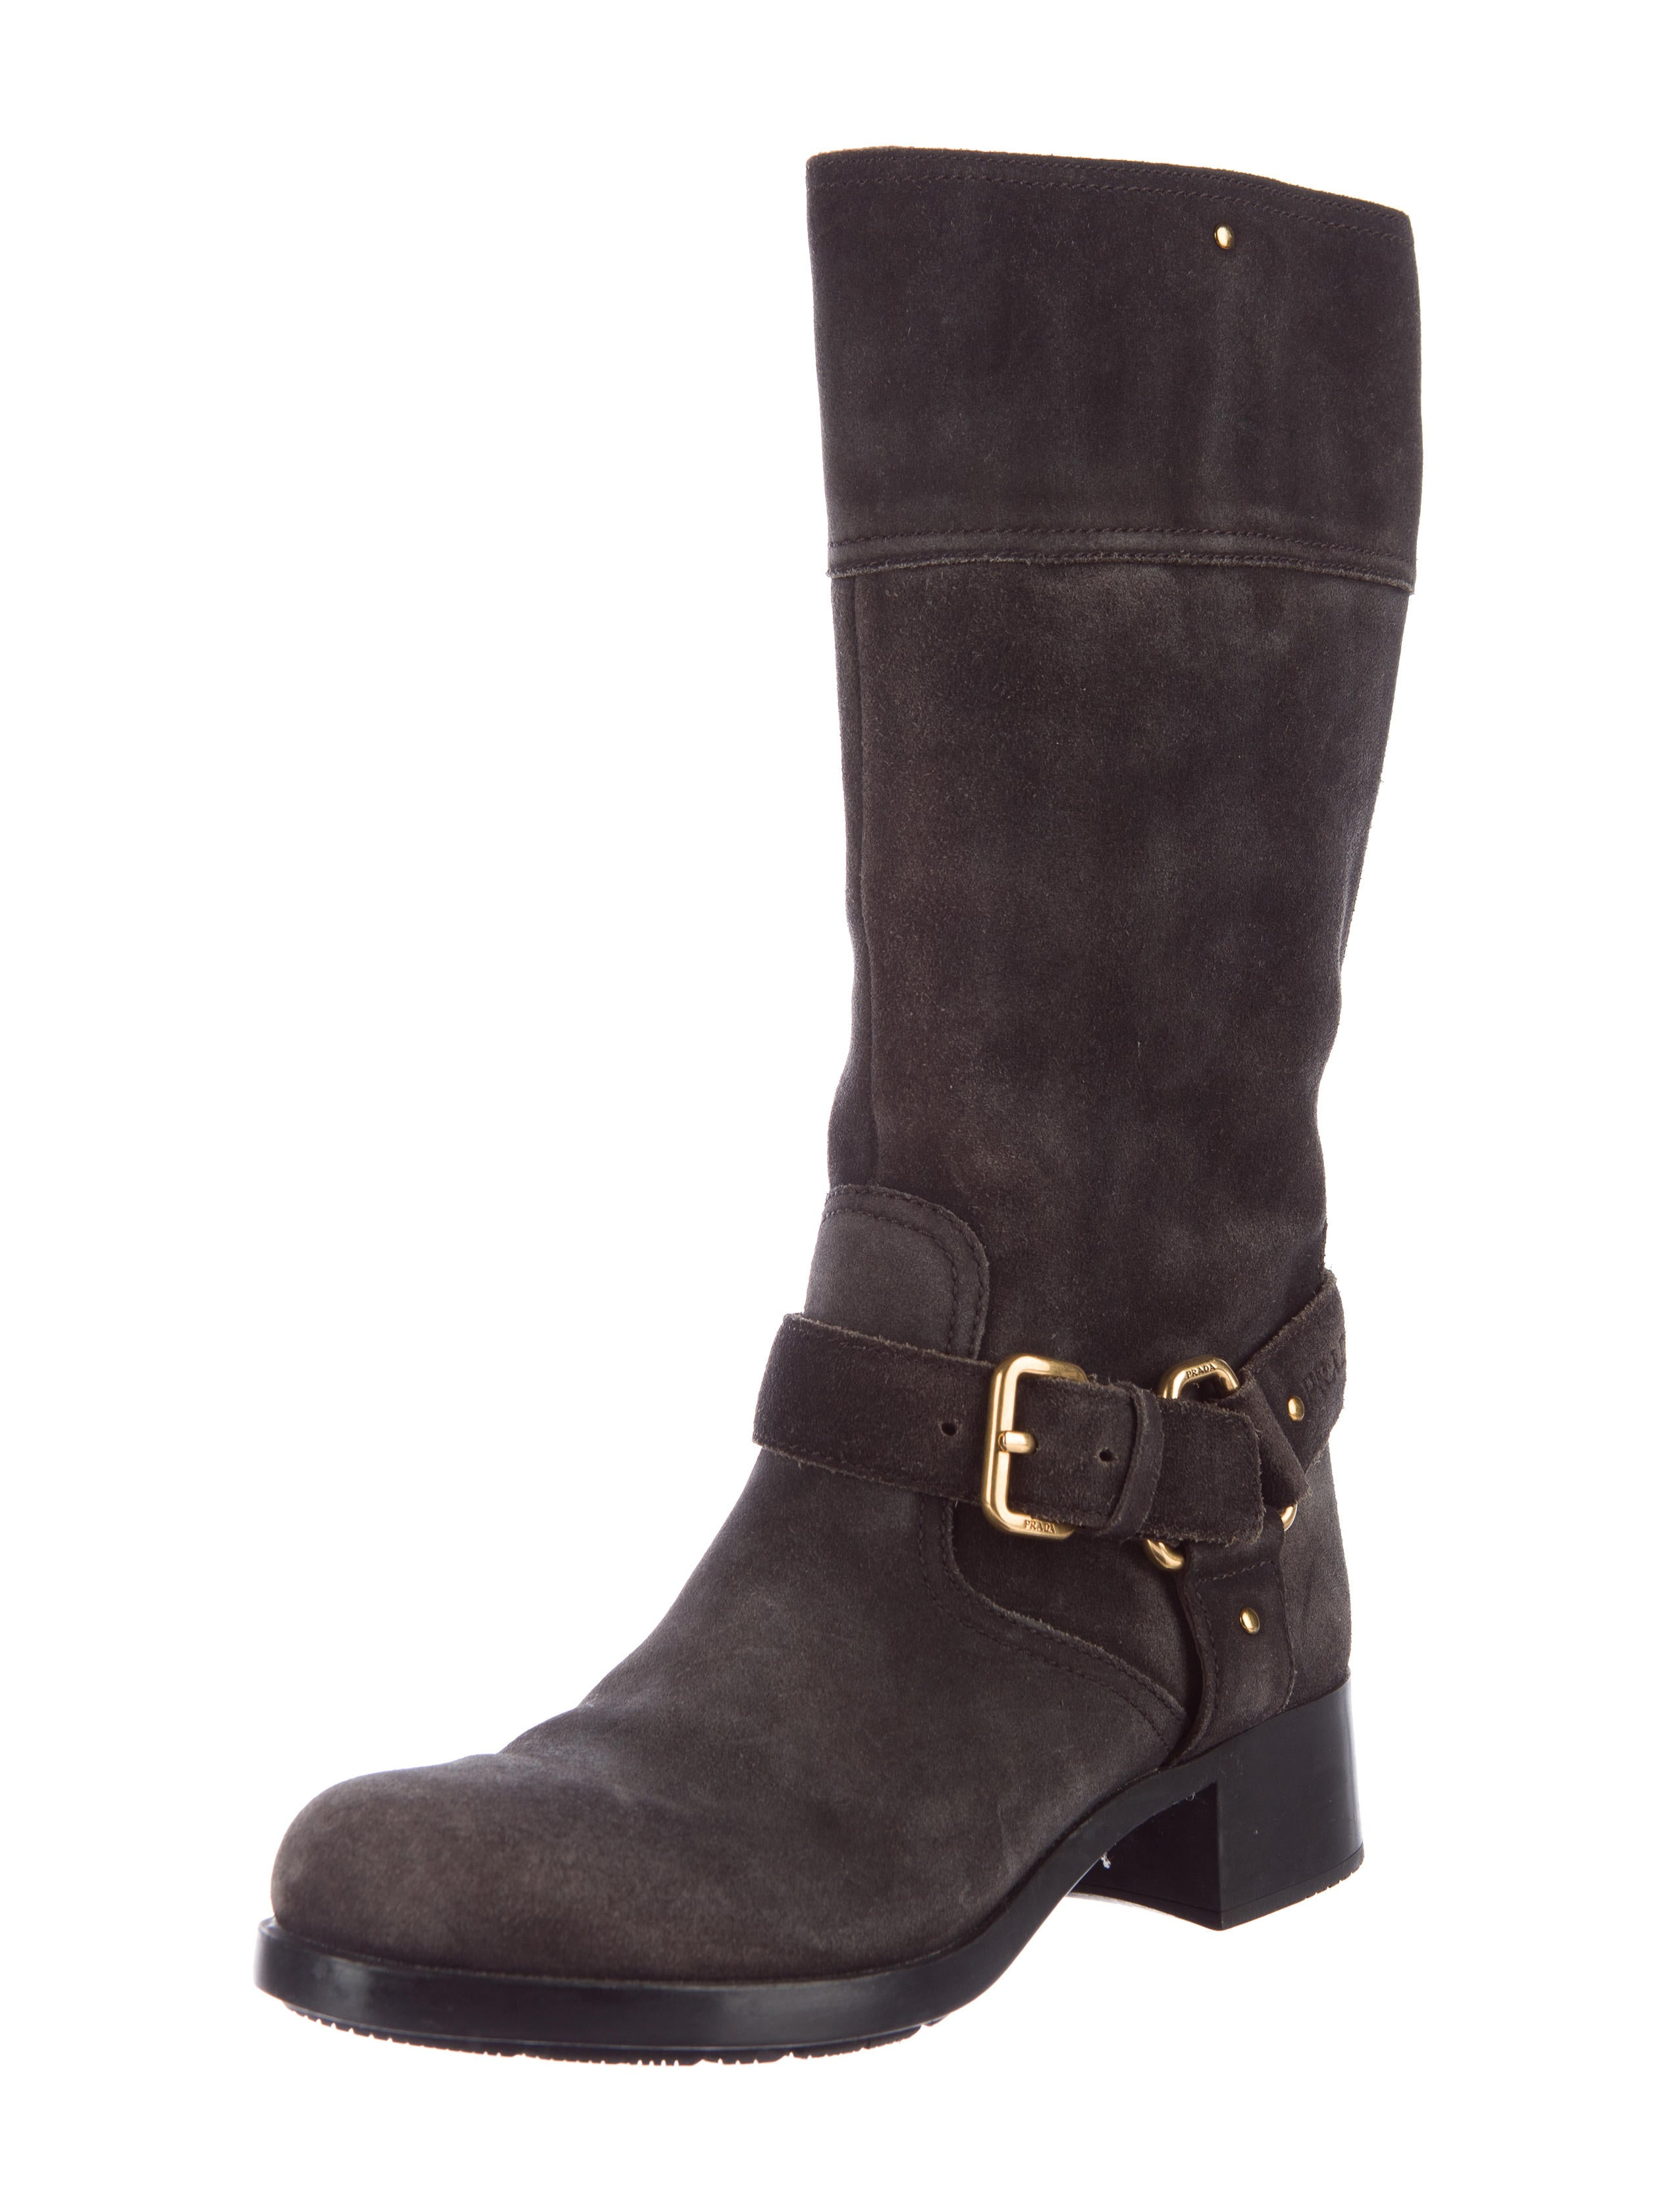 prada sport suede mid calf boots shoes wpr38553 the